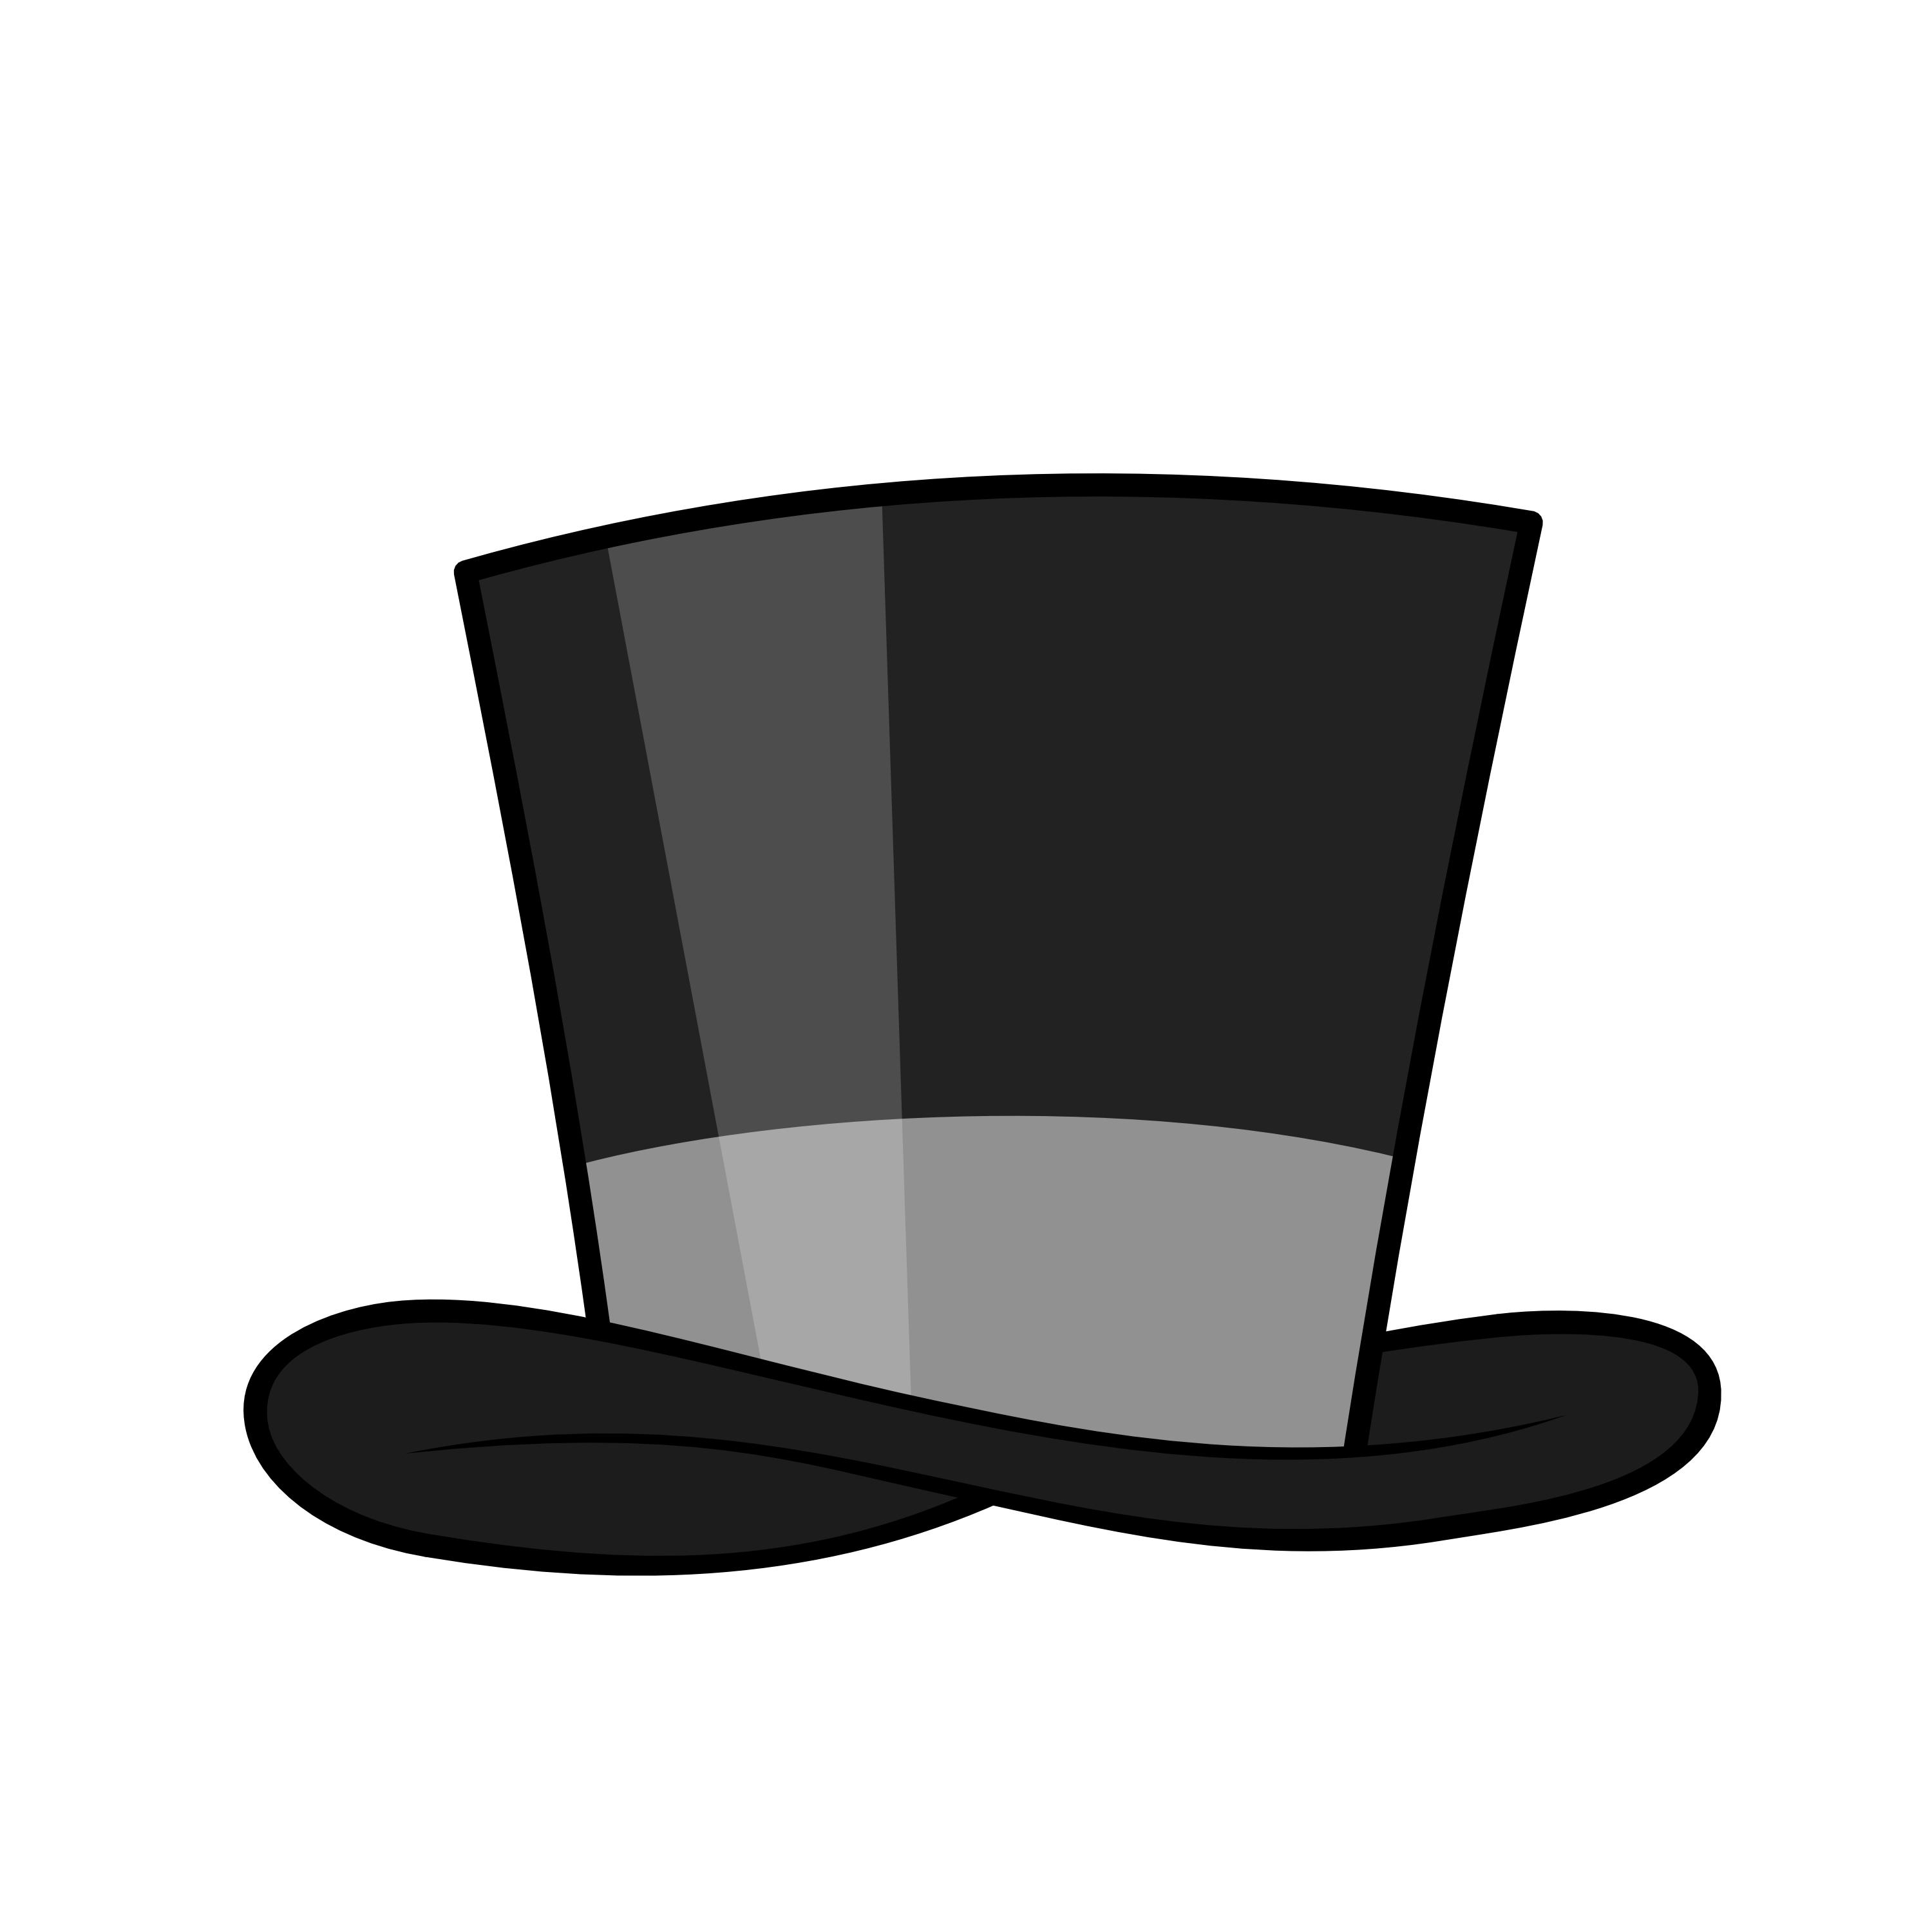 Top Hat No Background Clipart.